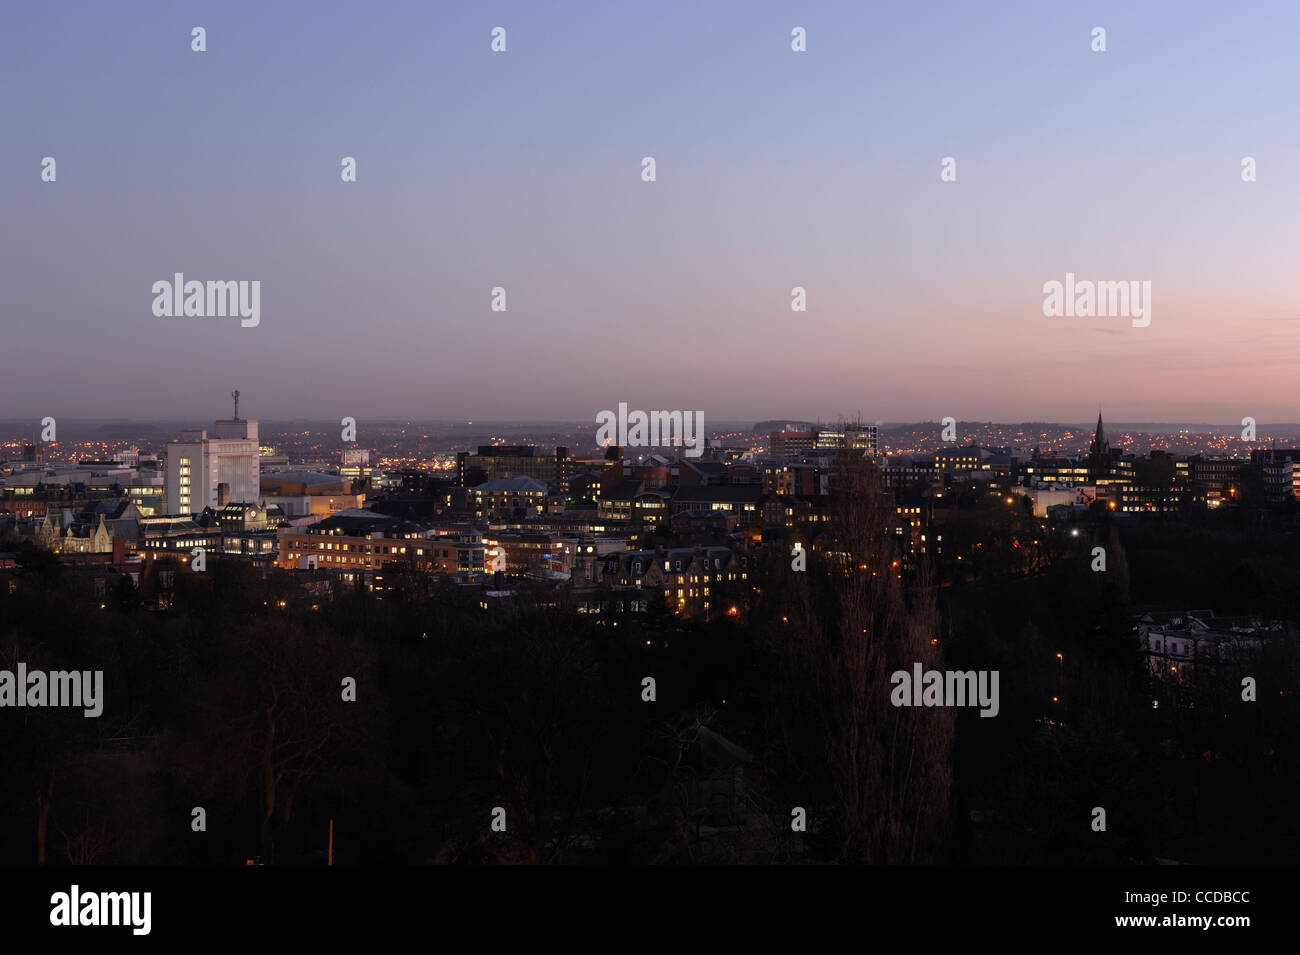 Nottingham panoramic skyline at dusk - Stock Image